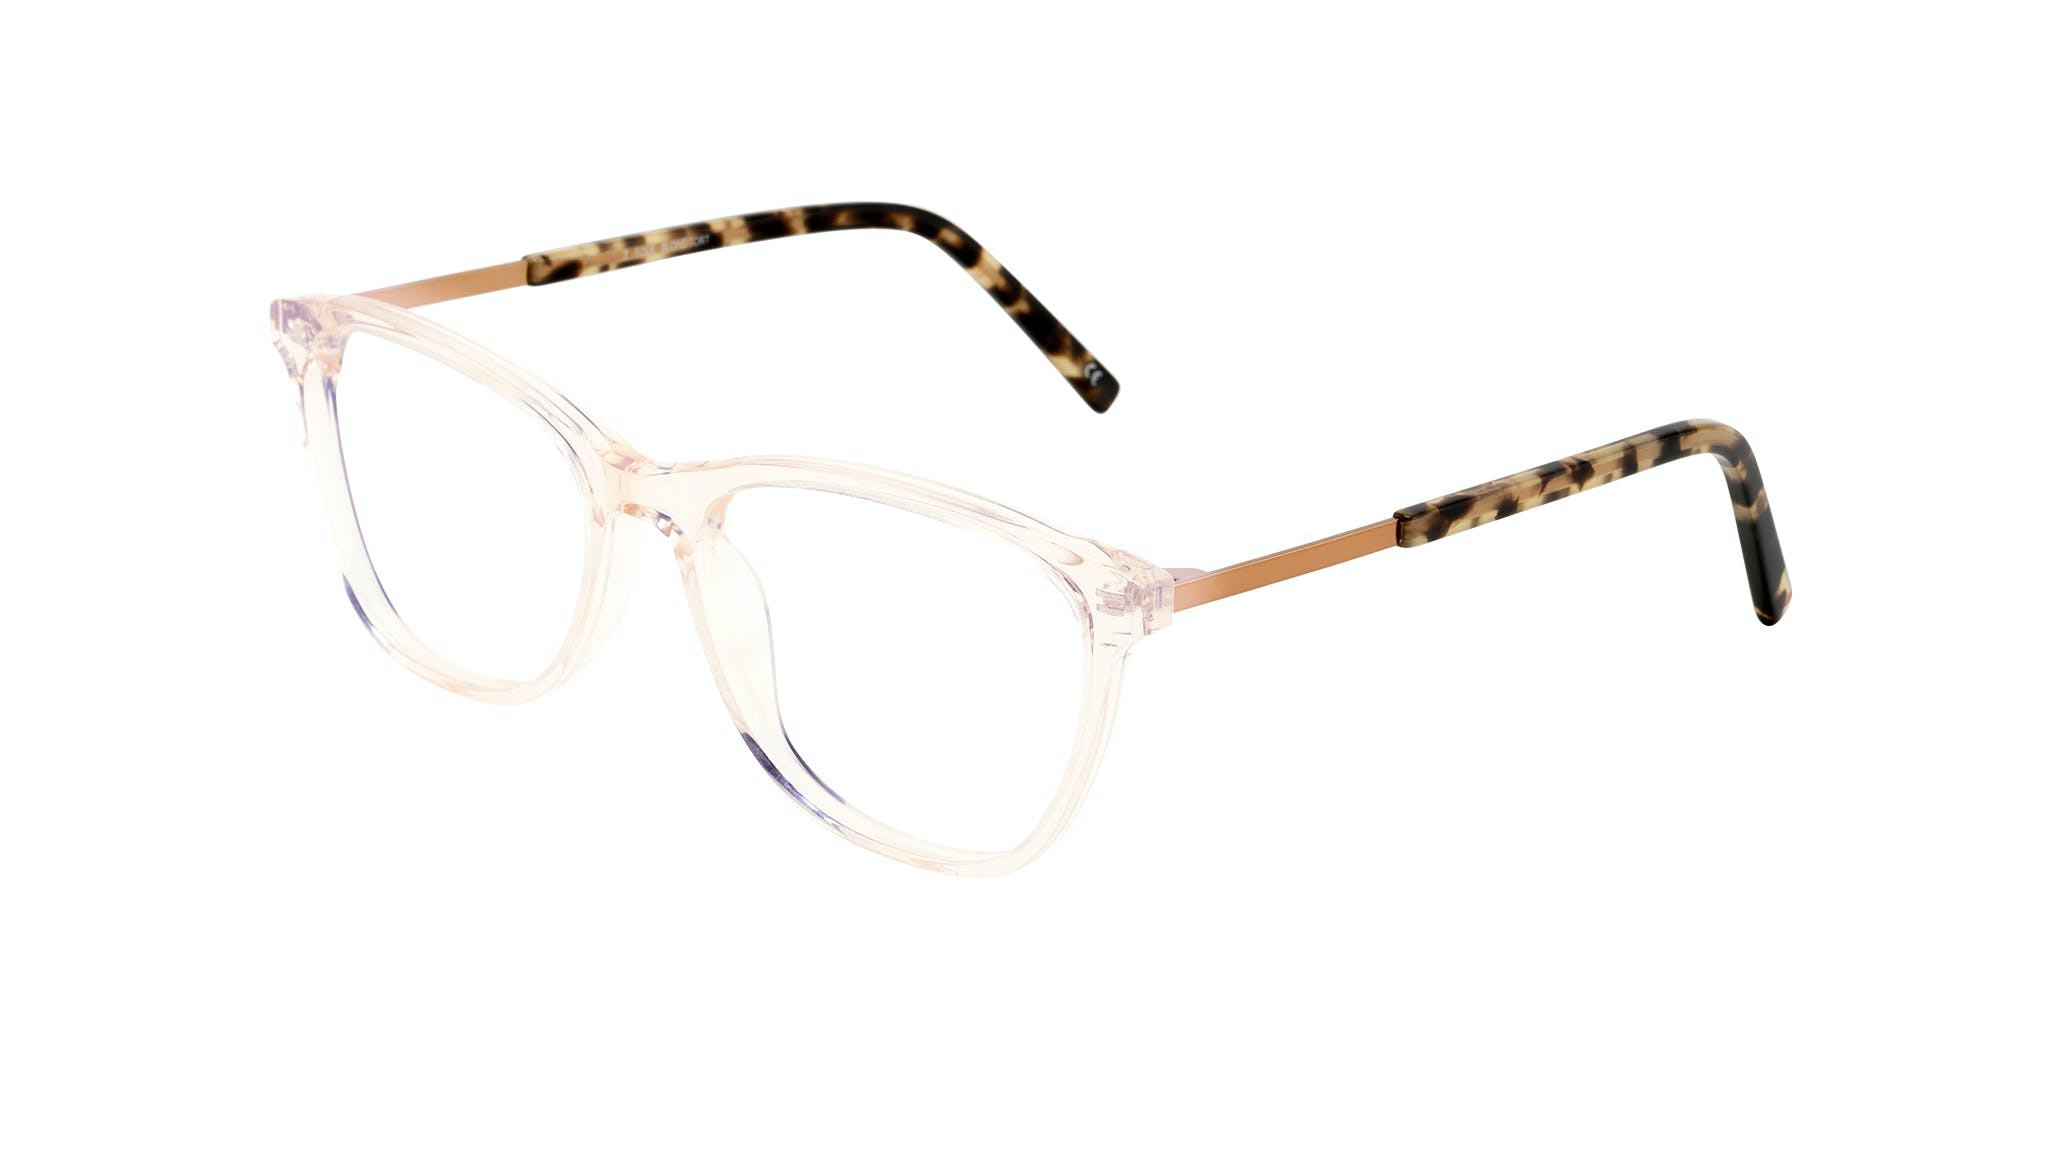 Affordable Fashion Glasses Rectangle Eyeglasses Women Folk Blond Tortoise Tilt